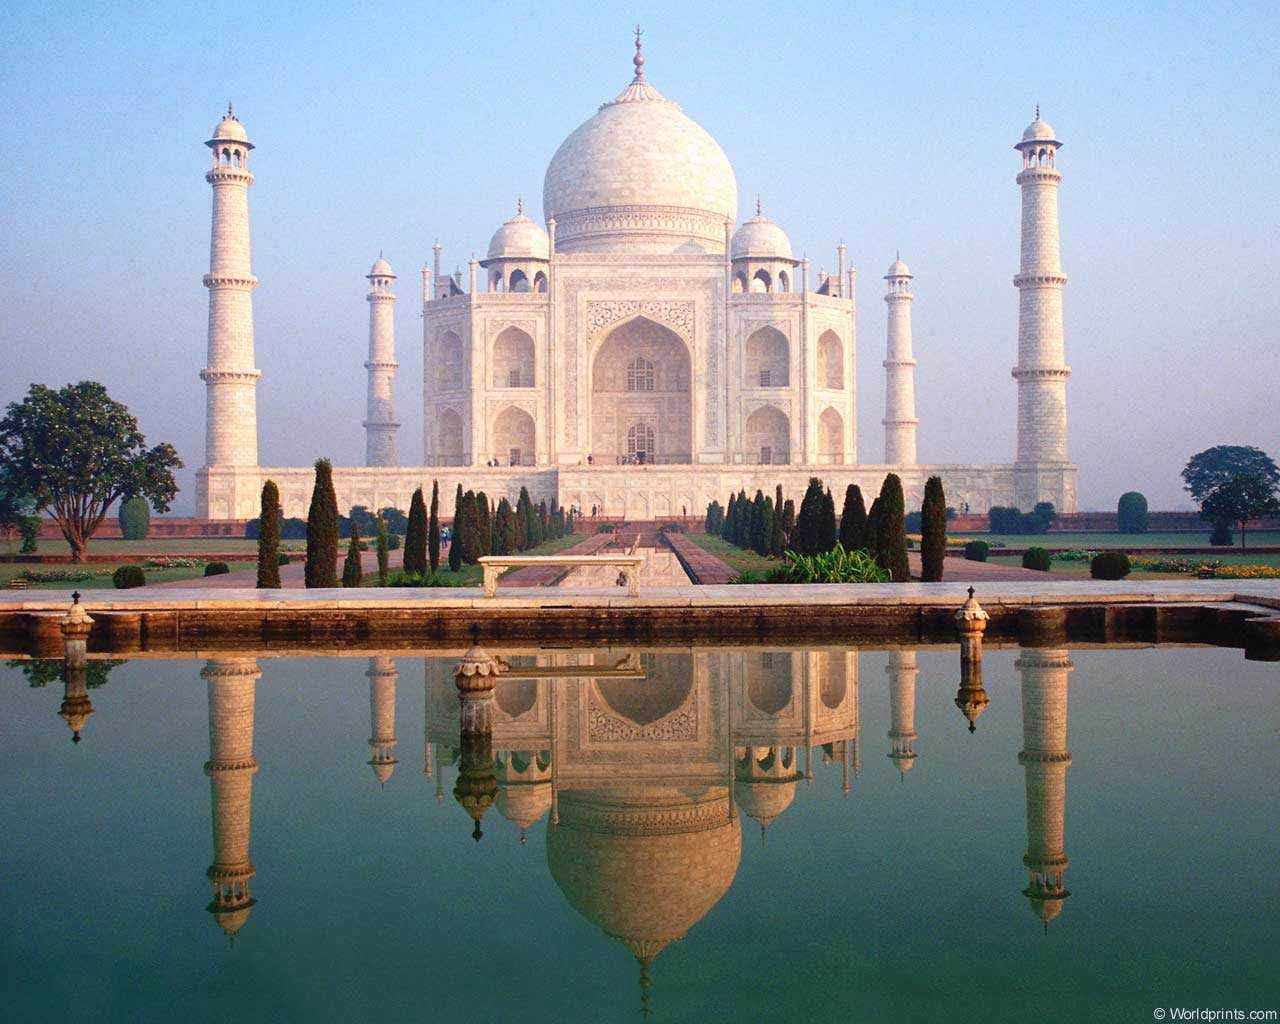 Historical Buildings, Taj Mahal |. This entry was posted on 12:04 AM and is